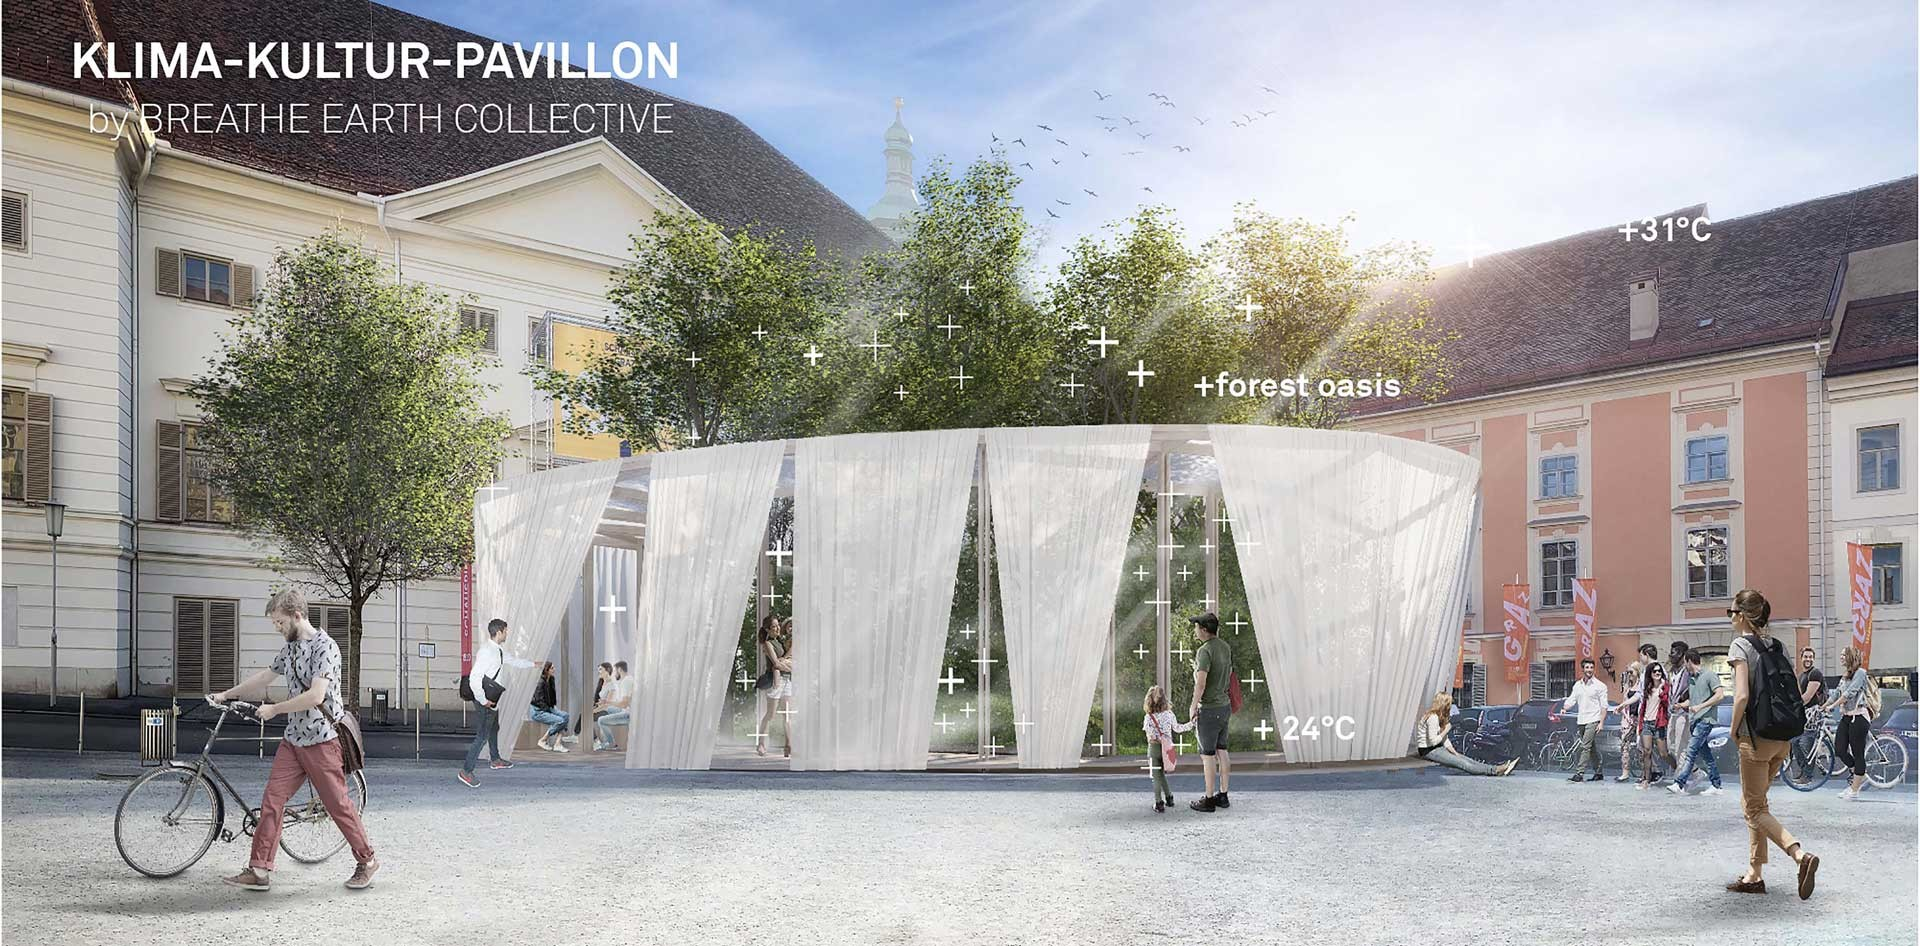 <BODY><div><div>Breathe Earth Collective, Visualization of the Climate Culture Pavilion, Graz, 2021</div><div>© Breathe Earth Collective </div><div> </div></div><br /></BODY>